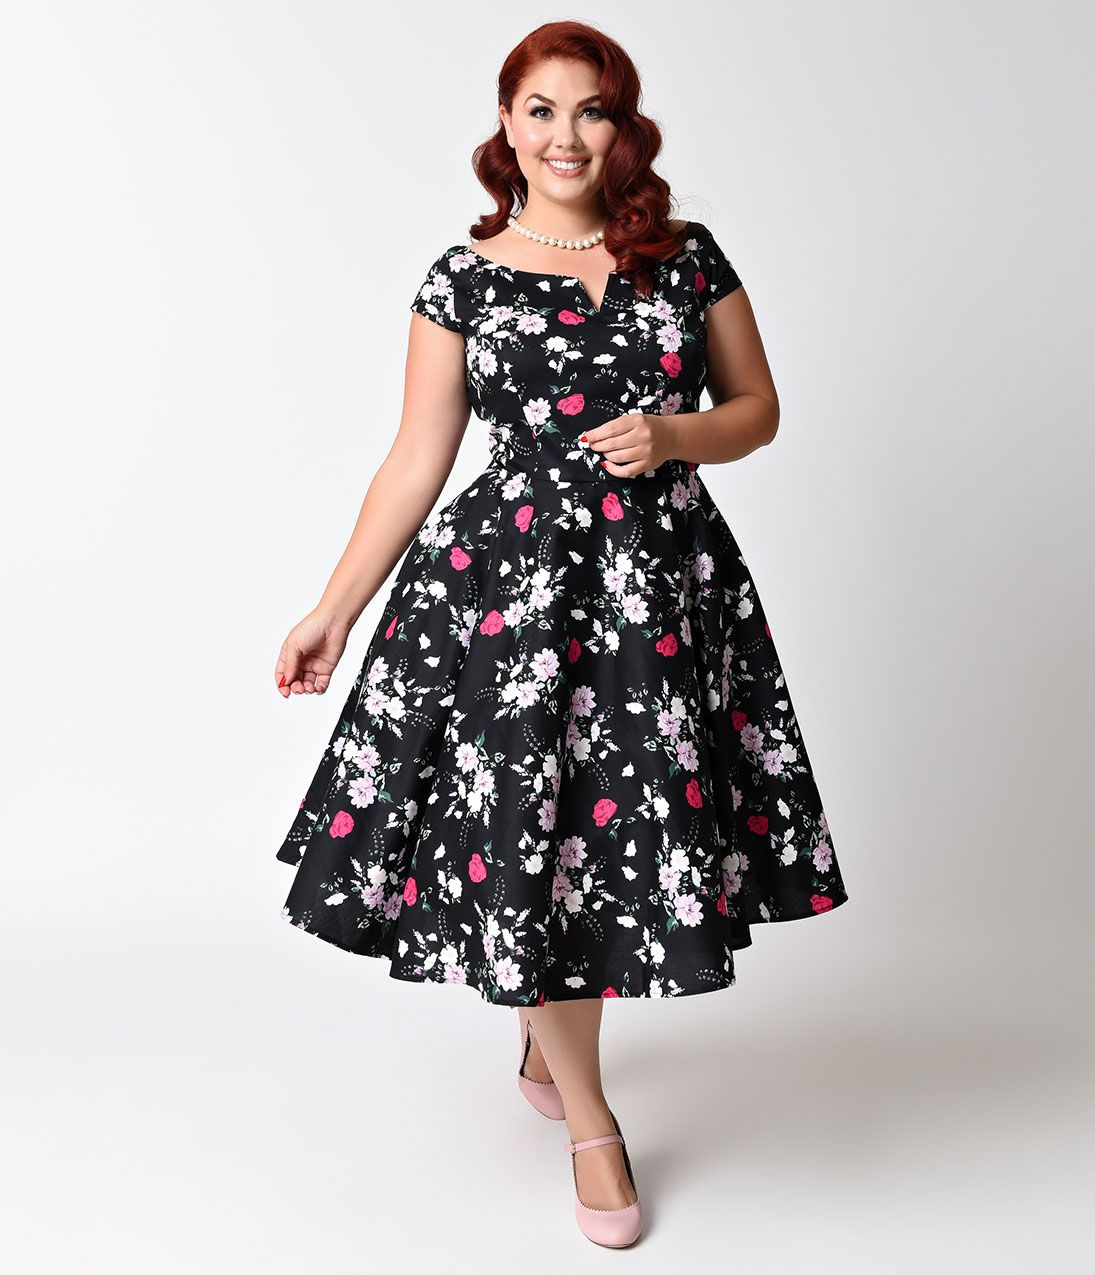 416a33e380a Plus Size 1950s Style Floral Swing Dress Tea Length